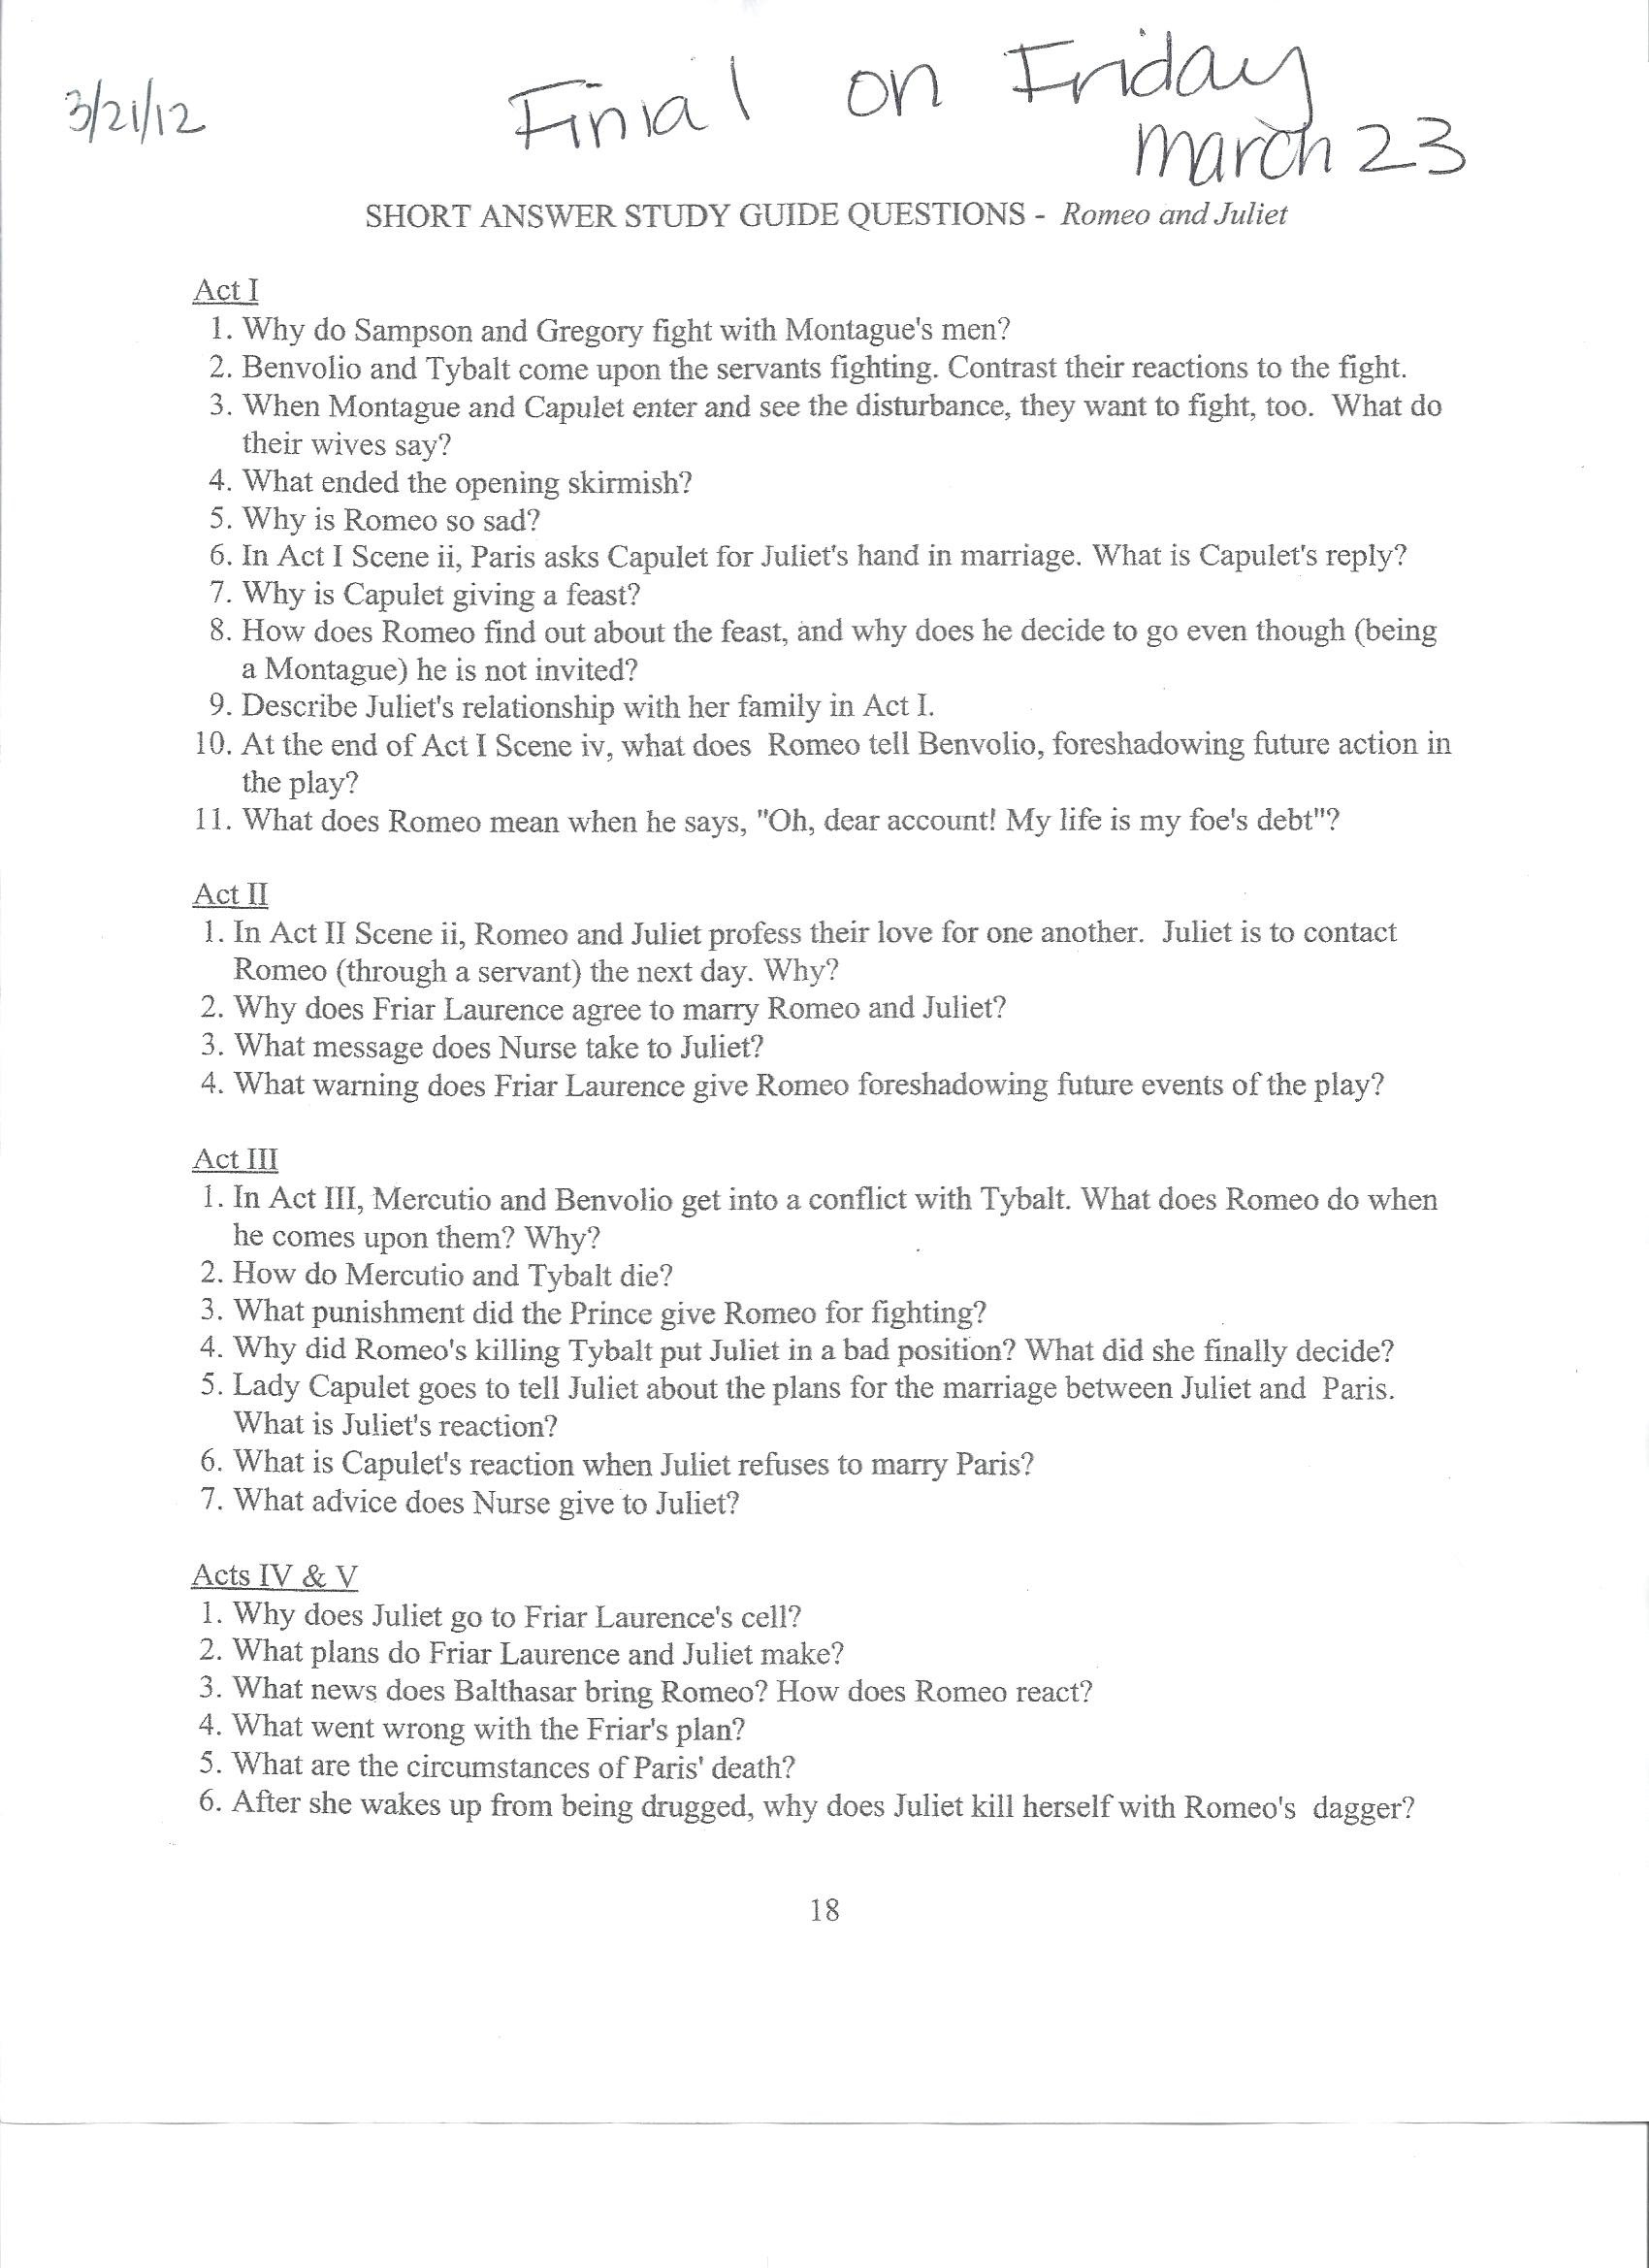 romeo and juliet literary essay topics writing ideas romeo and juliet essay outline for